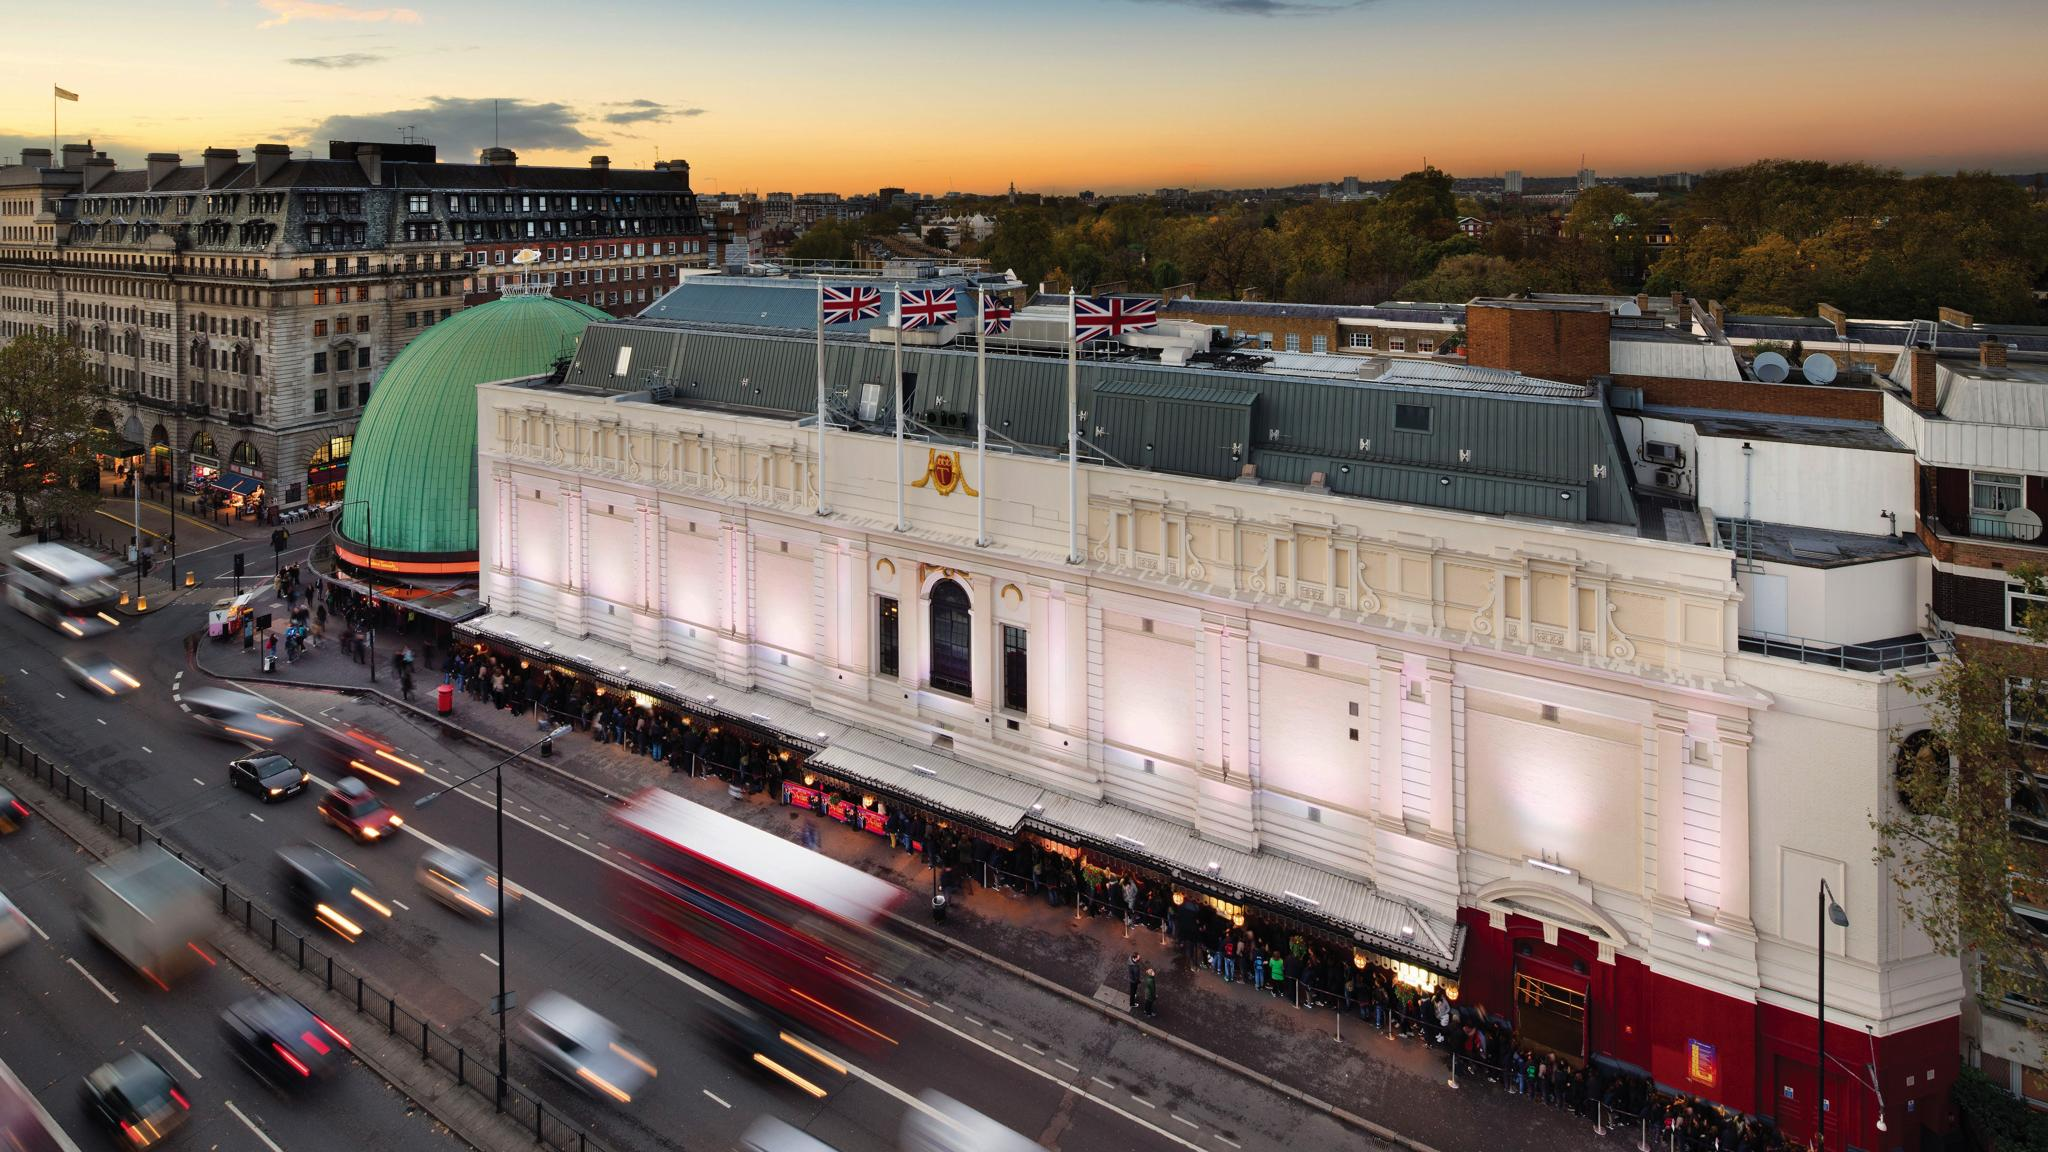 London site of Madame Tussauds up for sale